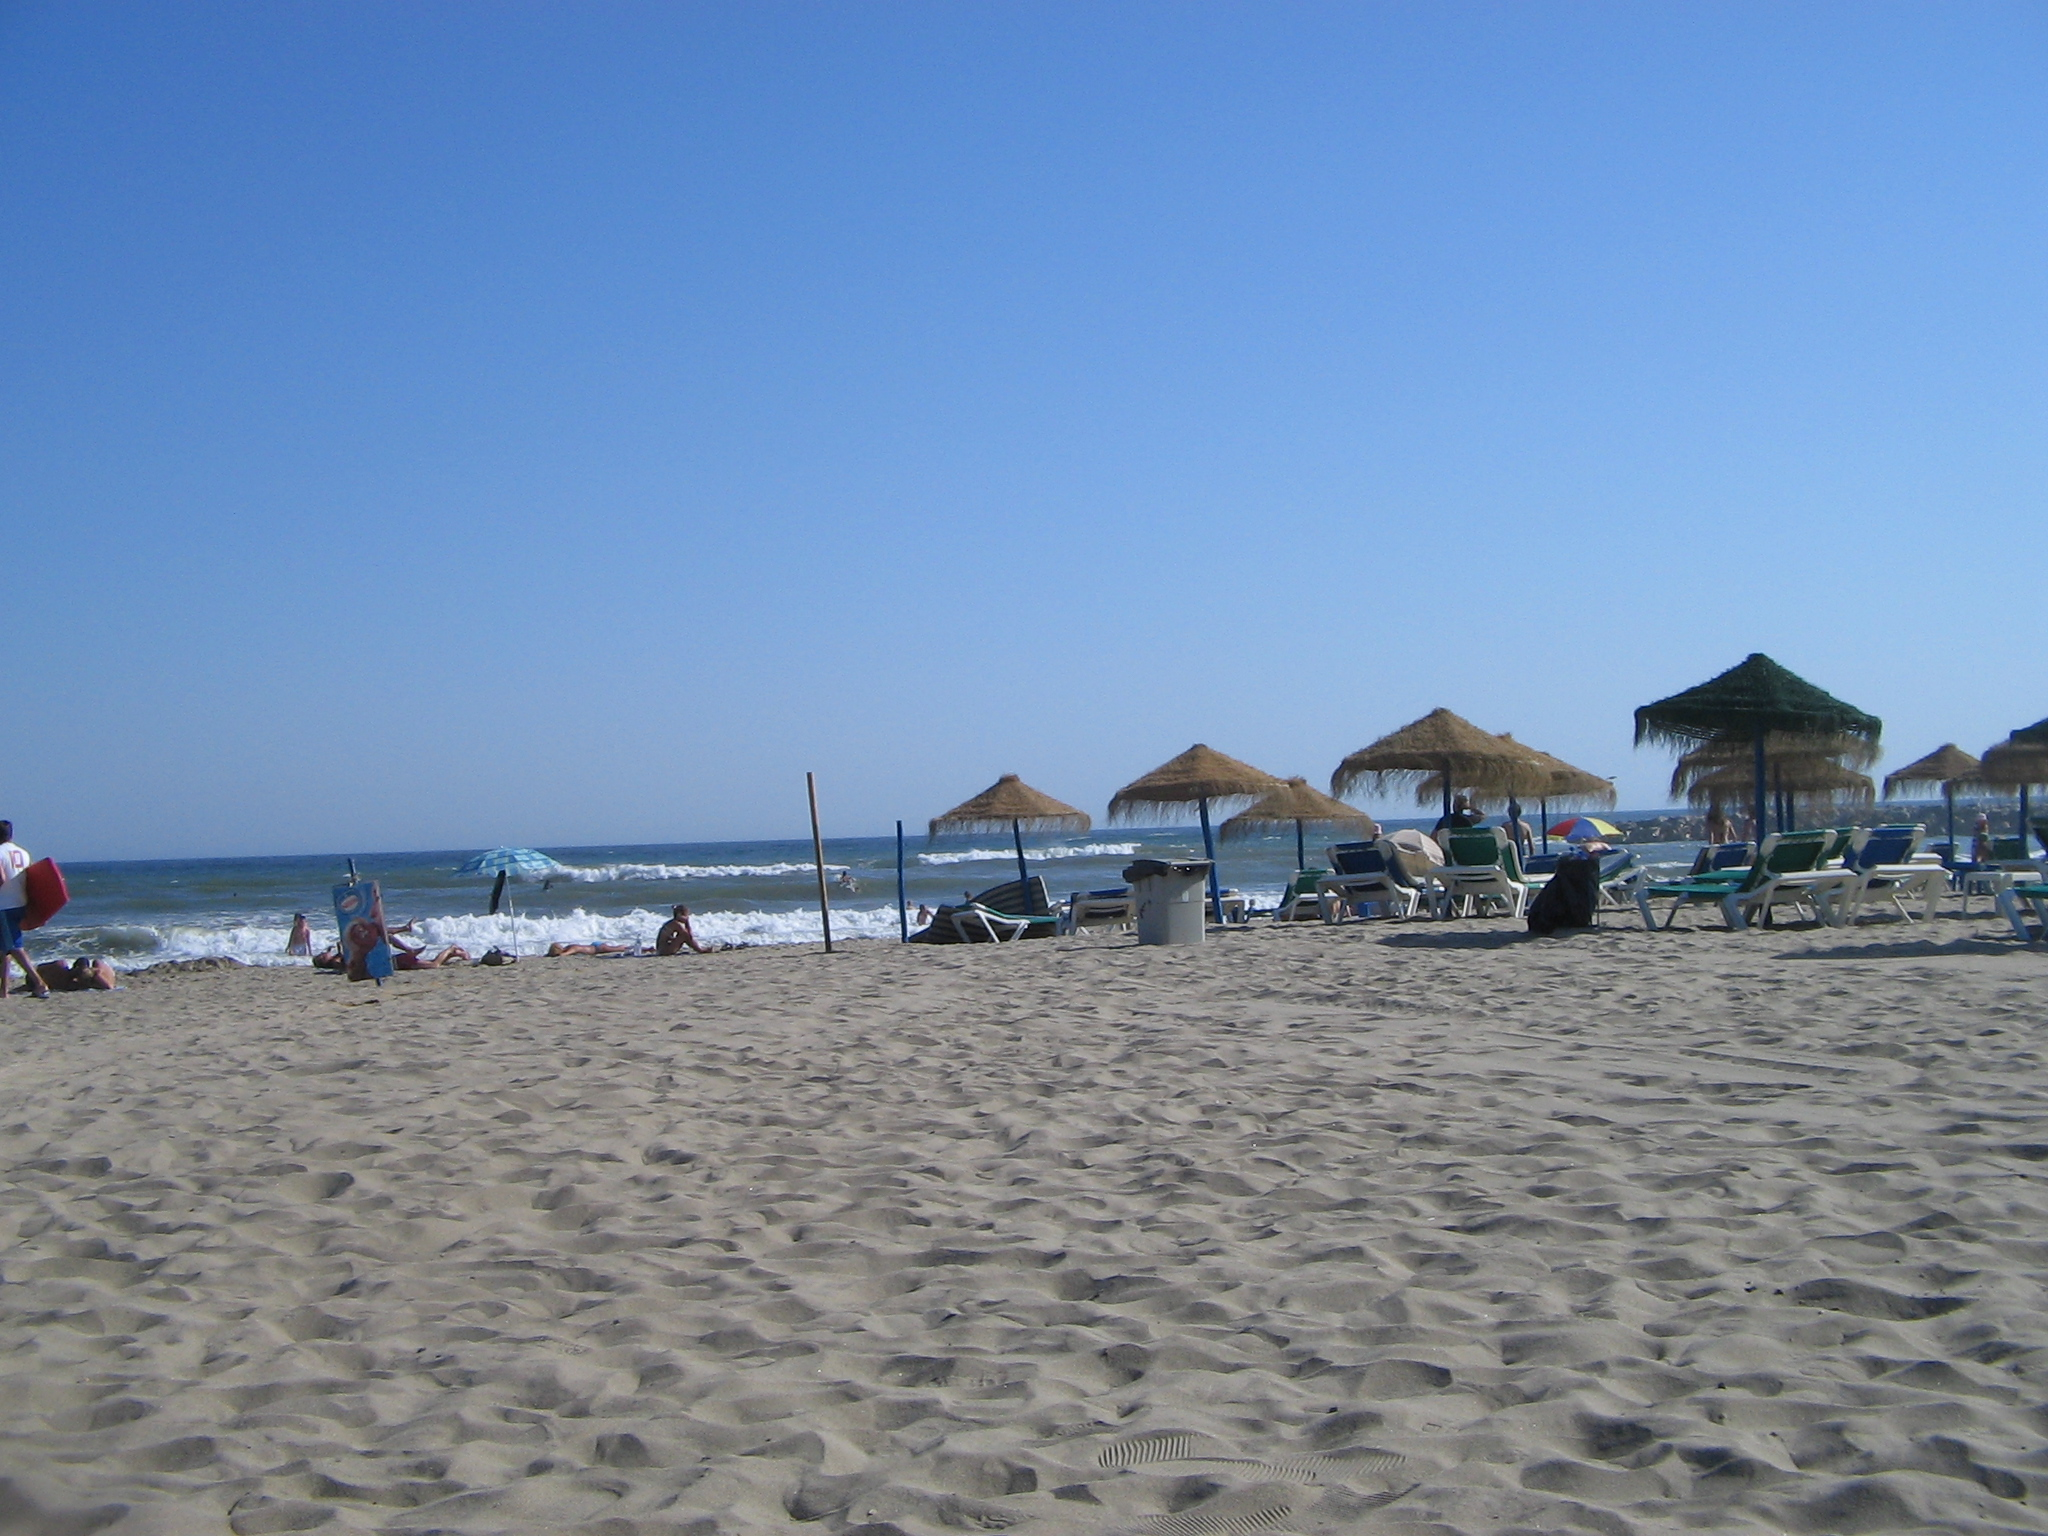 File:Cabopino beach, Costa del Sol, Spain 2005 7.jpg - Wikimedia Commons